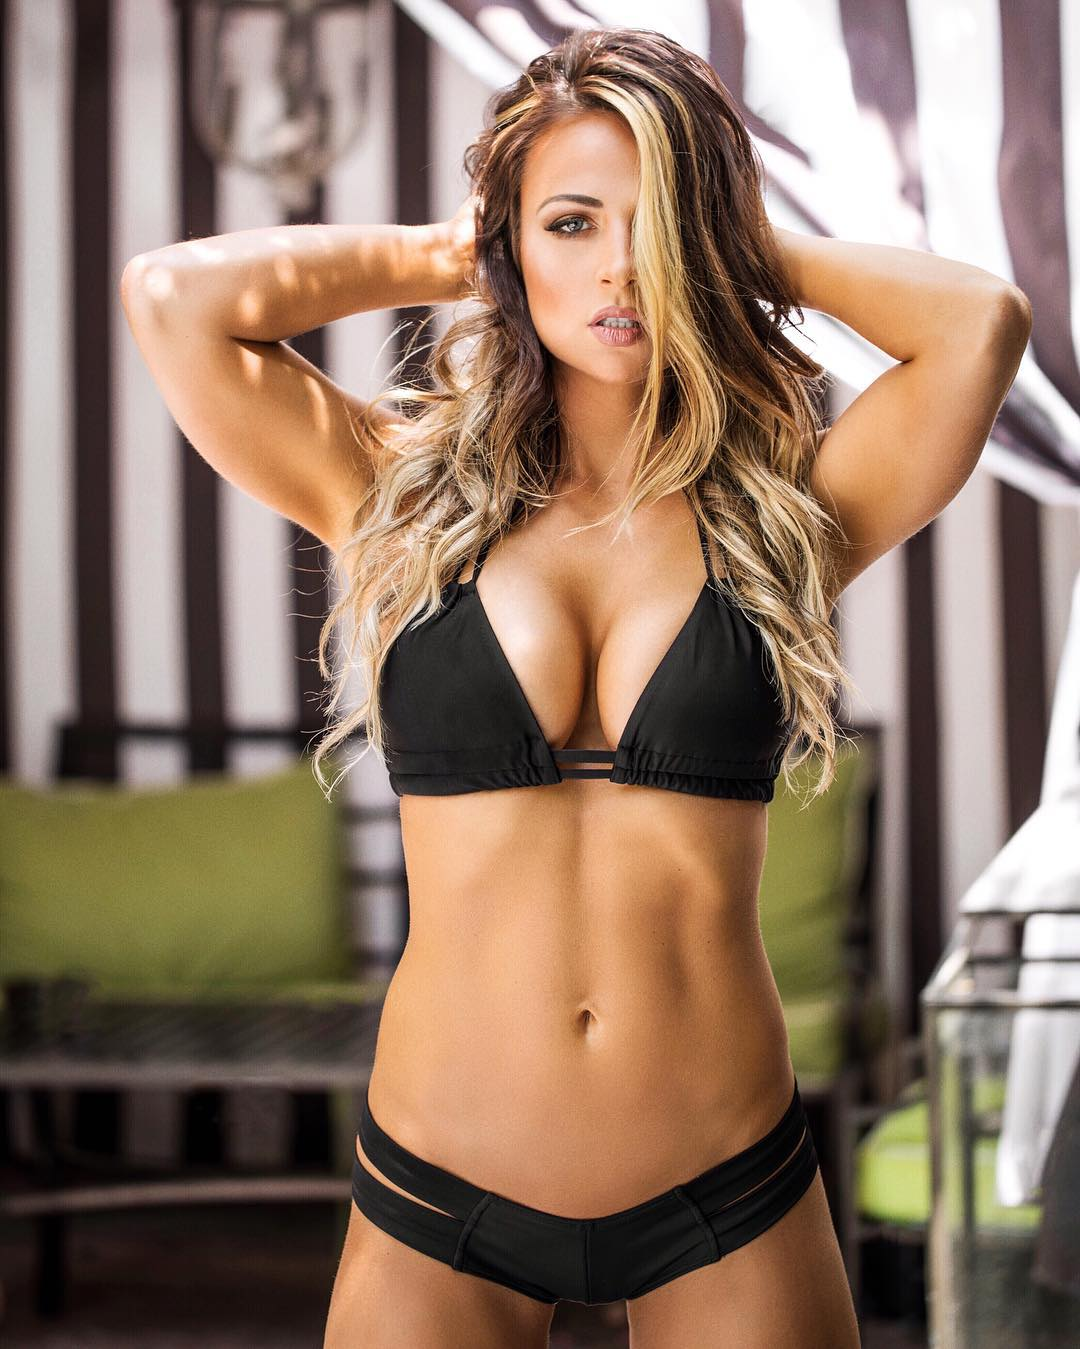 Tenille Dashwood Sexy Boobs Pictures on Black Bikini